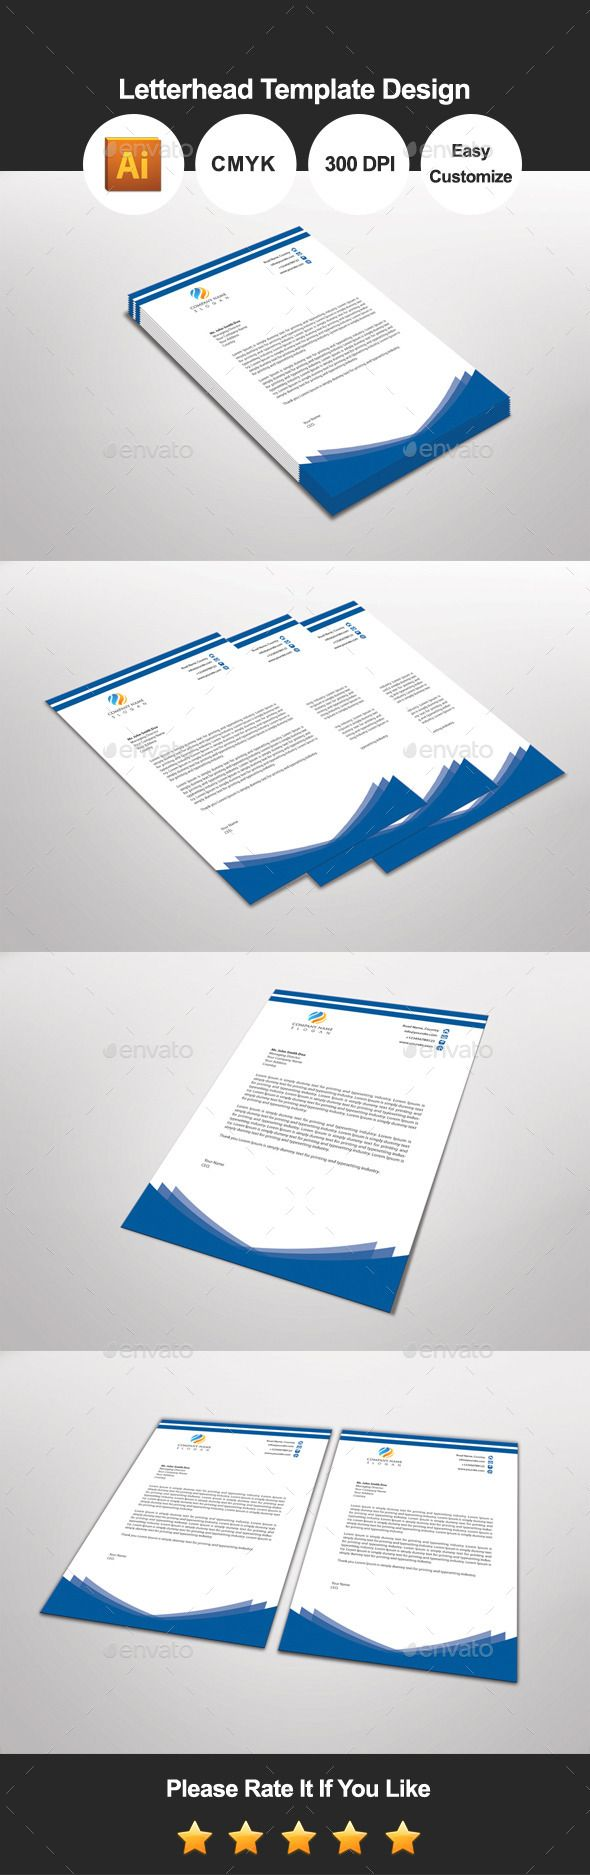 Bluebuilder Letterhead Template Design — Vector EPS #company pad #letter pad • Available here → https://graphicriver.net/item/bluebuilder-letterhead-template-design/11502866?ref=pxcr